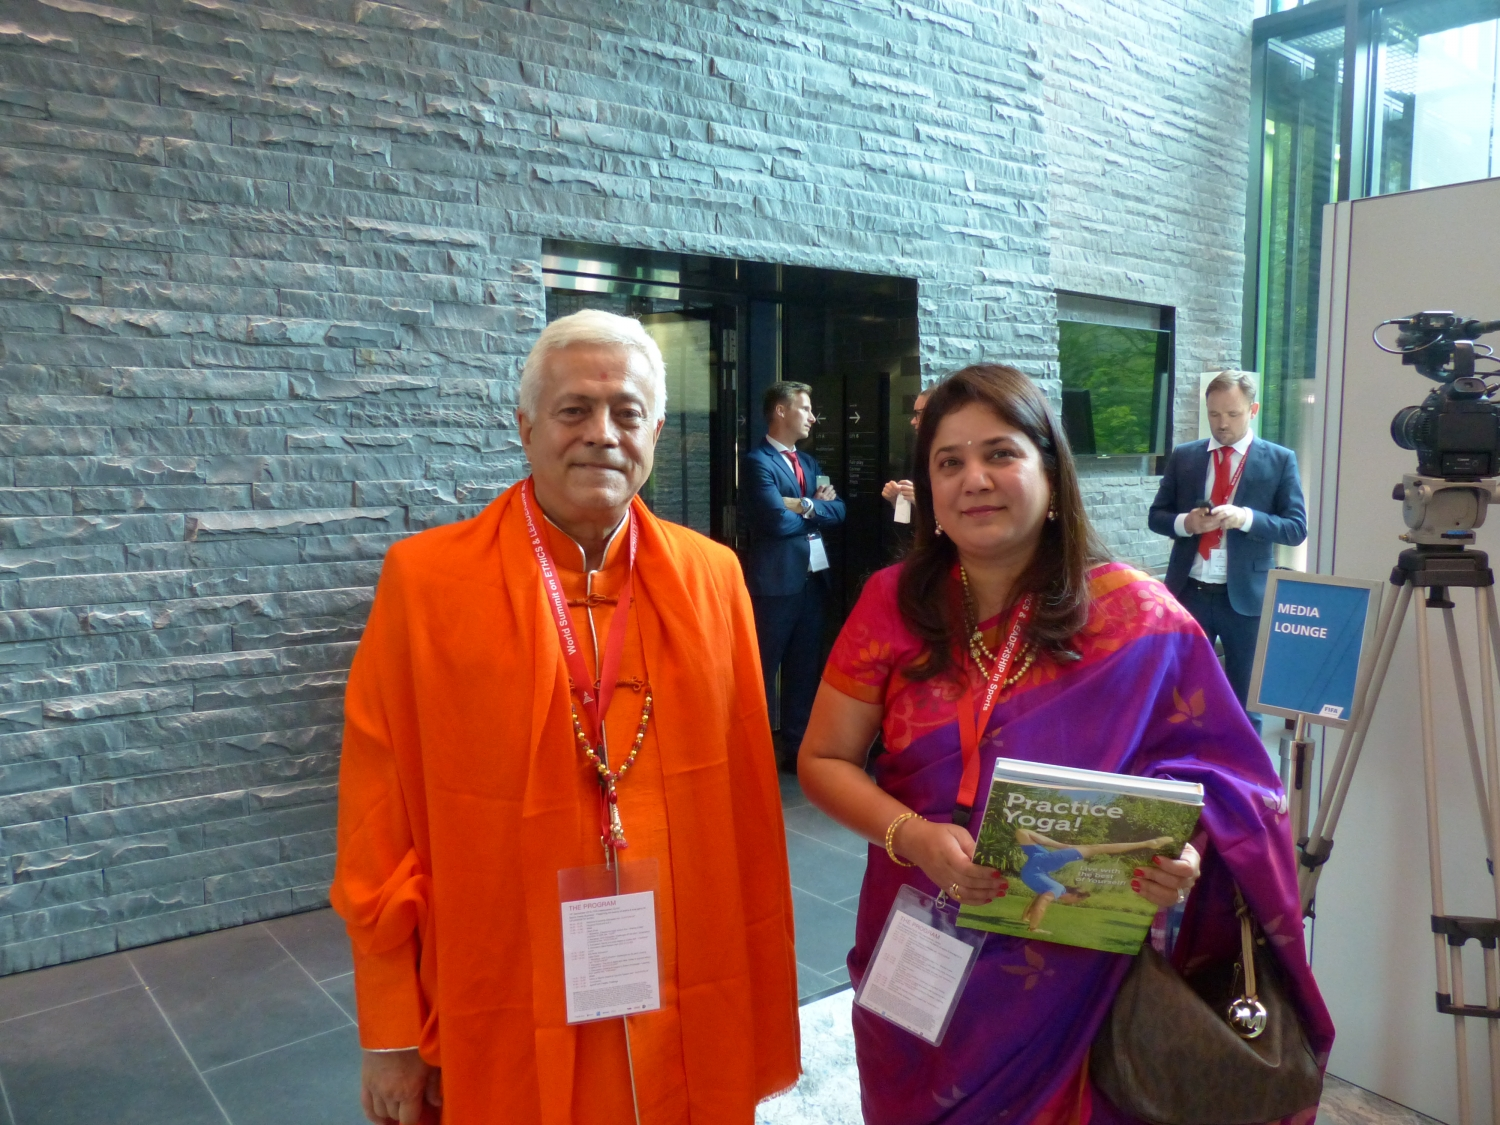 H.H. Jagat Guru Amrta Súryánanda Mahá Rája com Mrs. Rajita Kulkarni, Presidente da World Forum for Ethics in Business